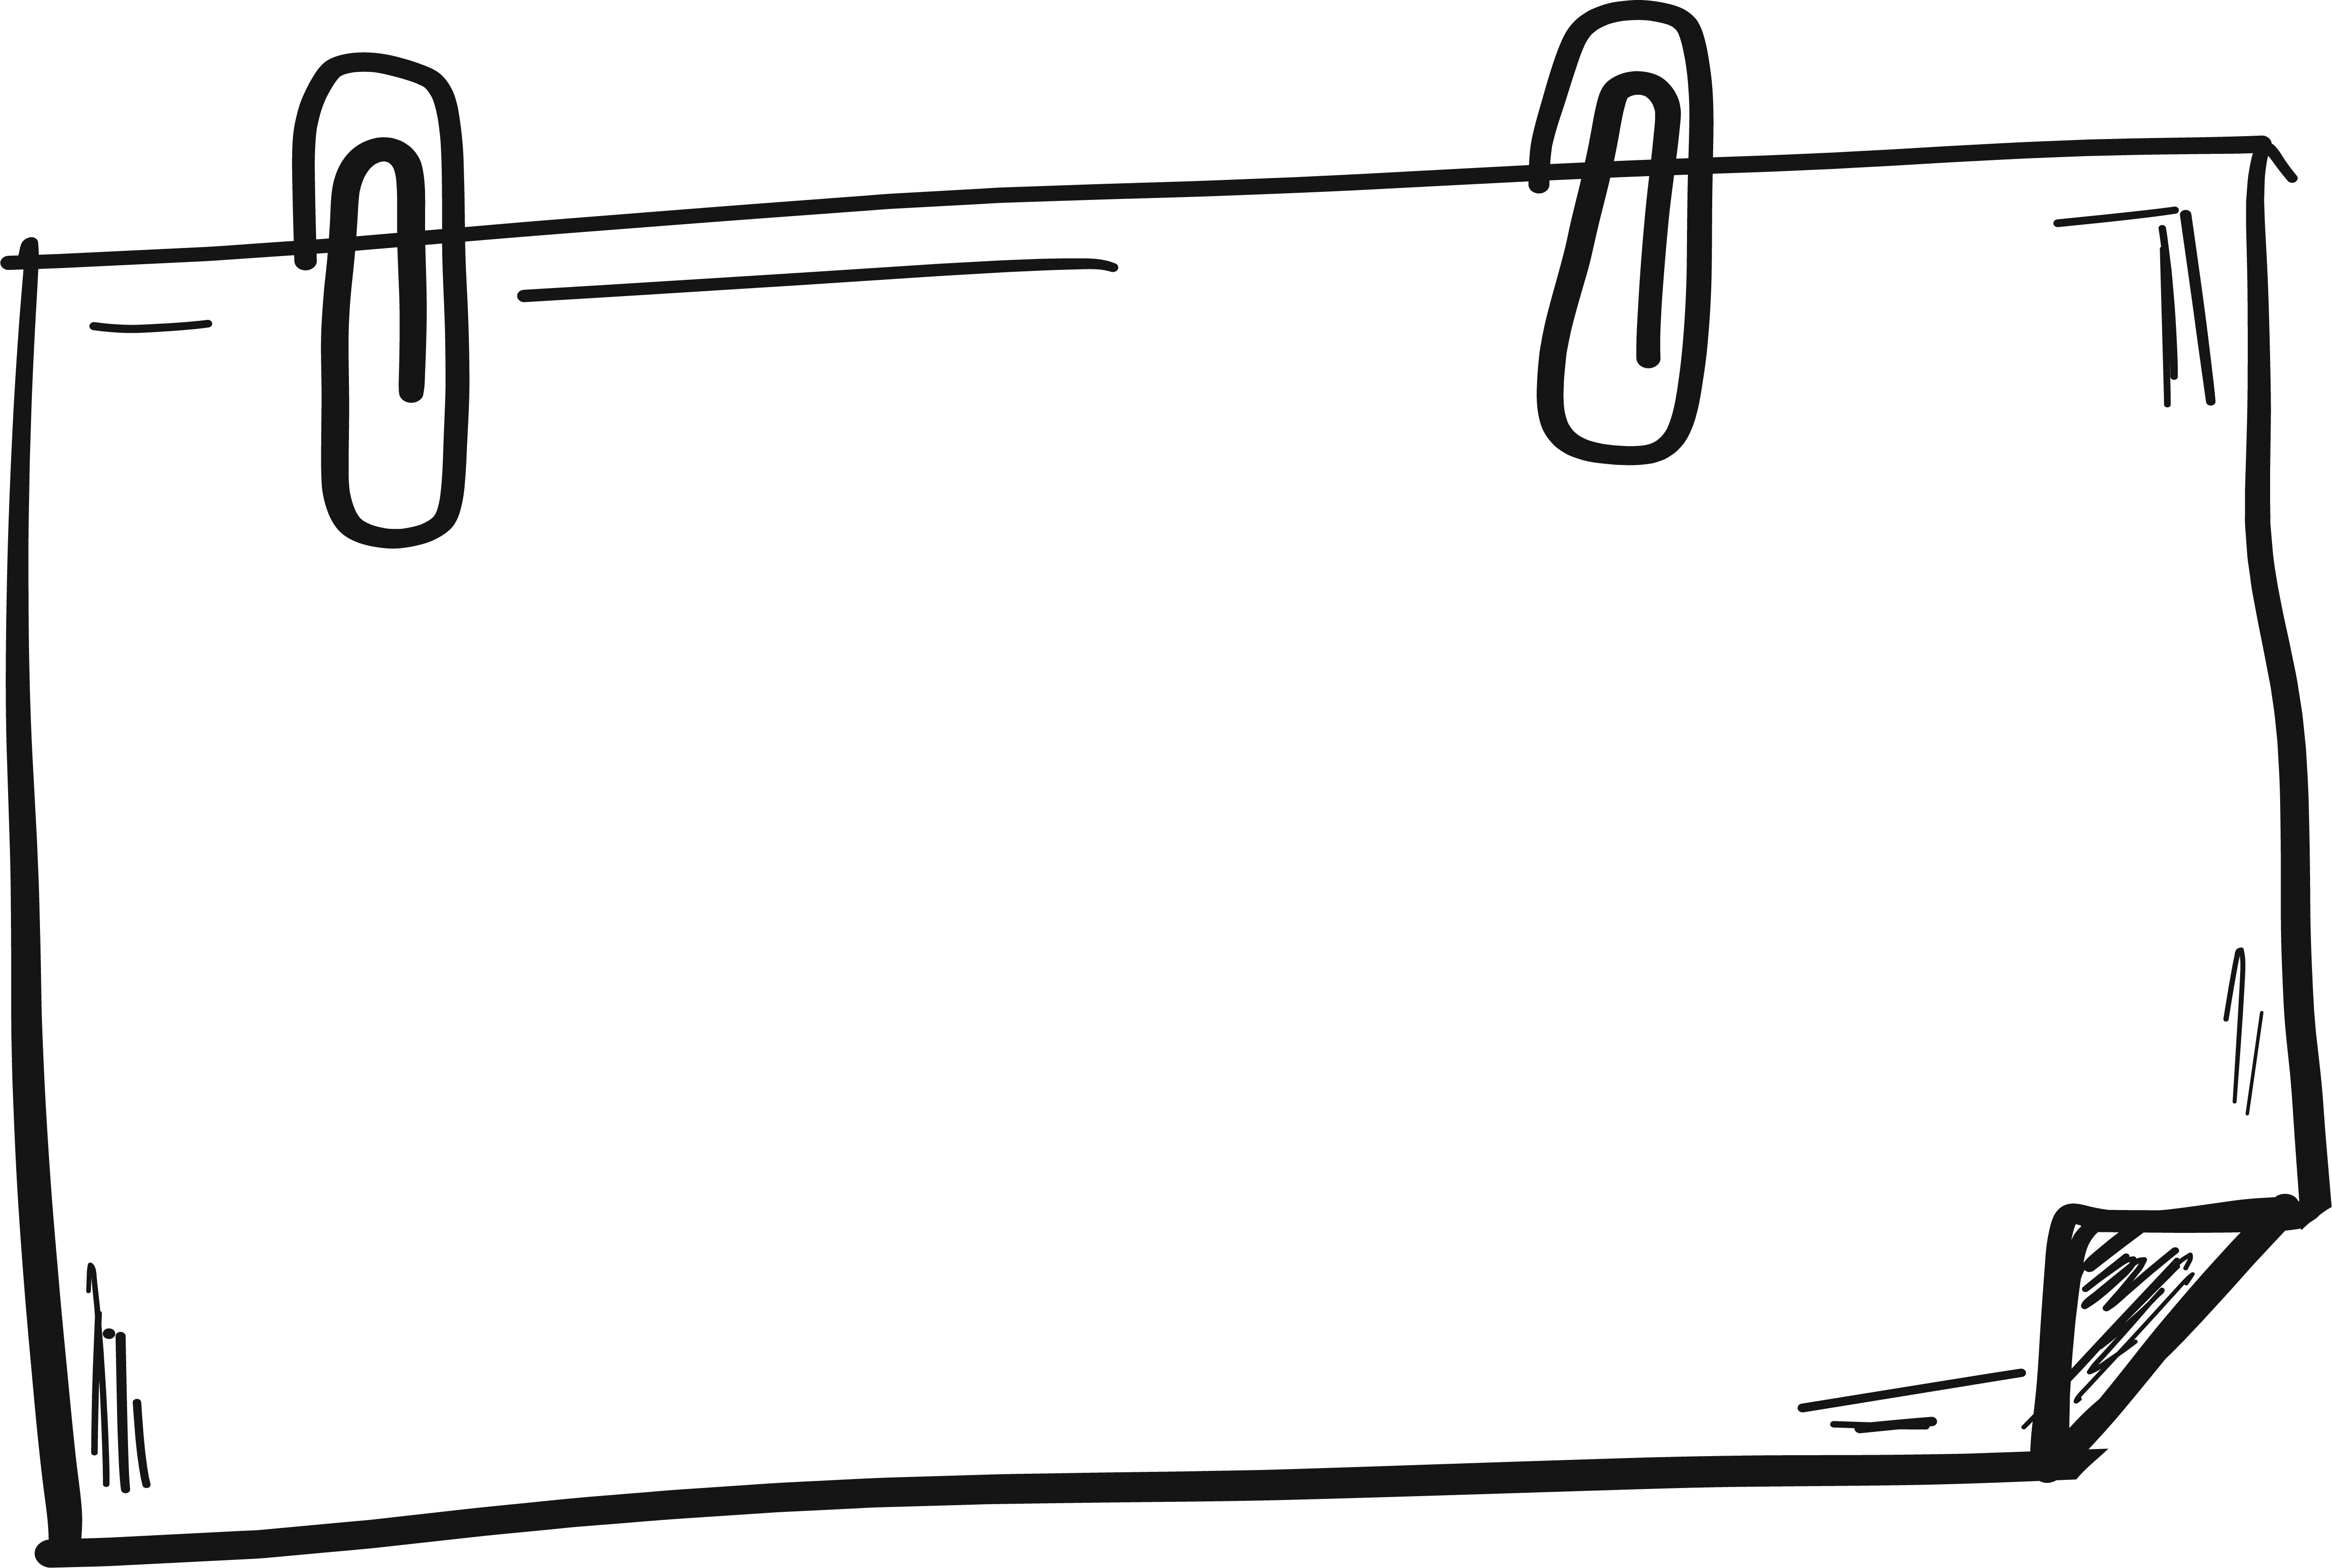 Download Hand Drawn Line Png Picture Black And White Download Hand Drawn Border Png Full Size Png Image Pngkit Search and download free hd hand drawn rectangle png images with transparent background online from lovepik.com. pngkit